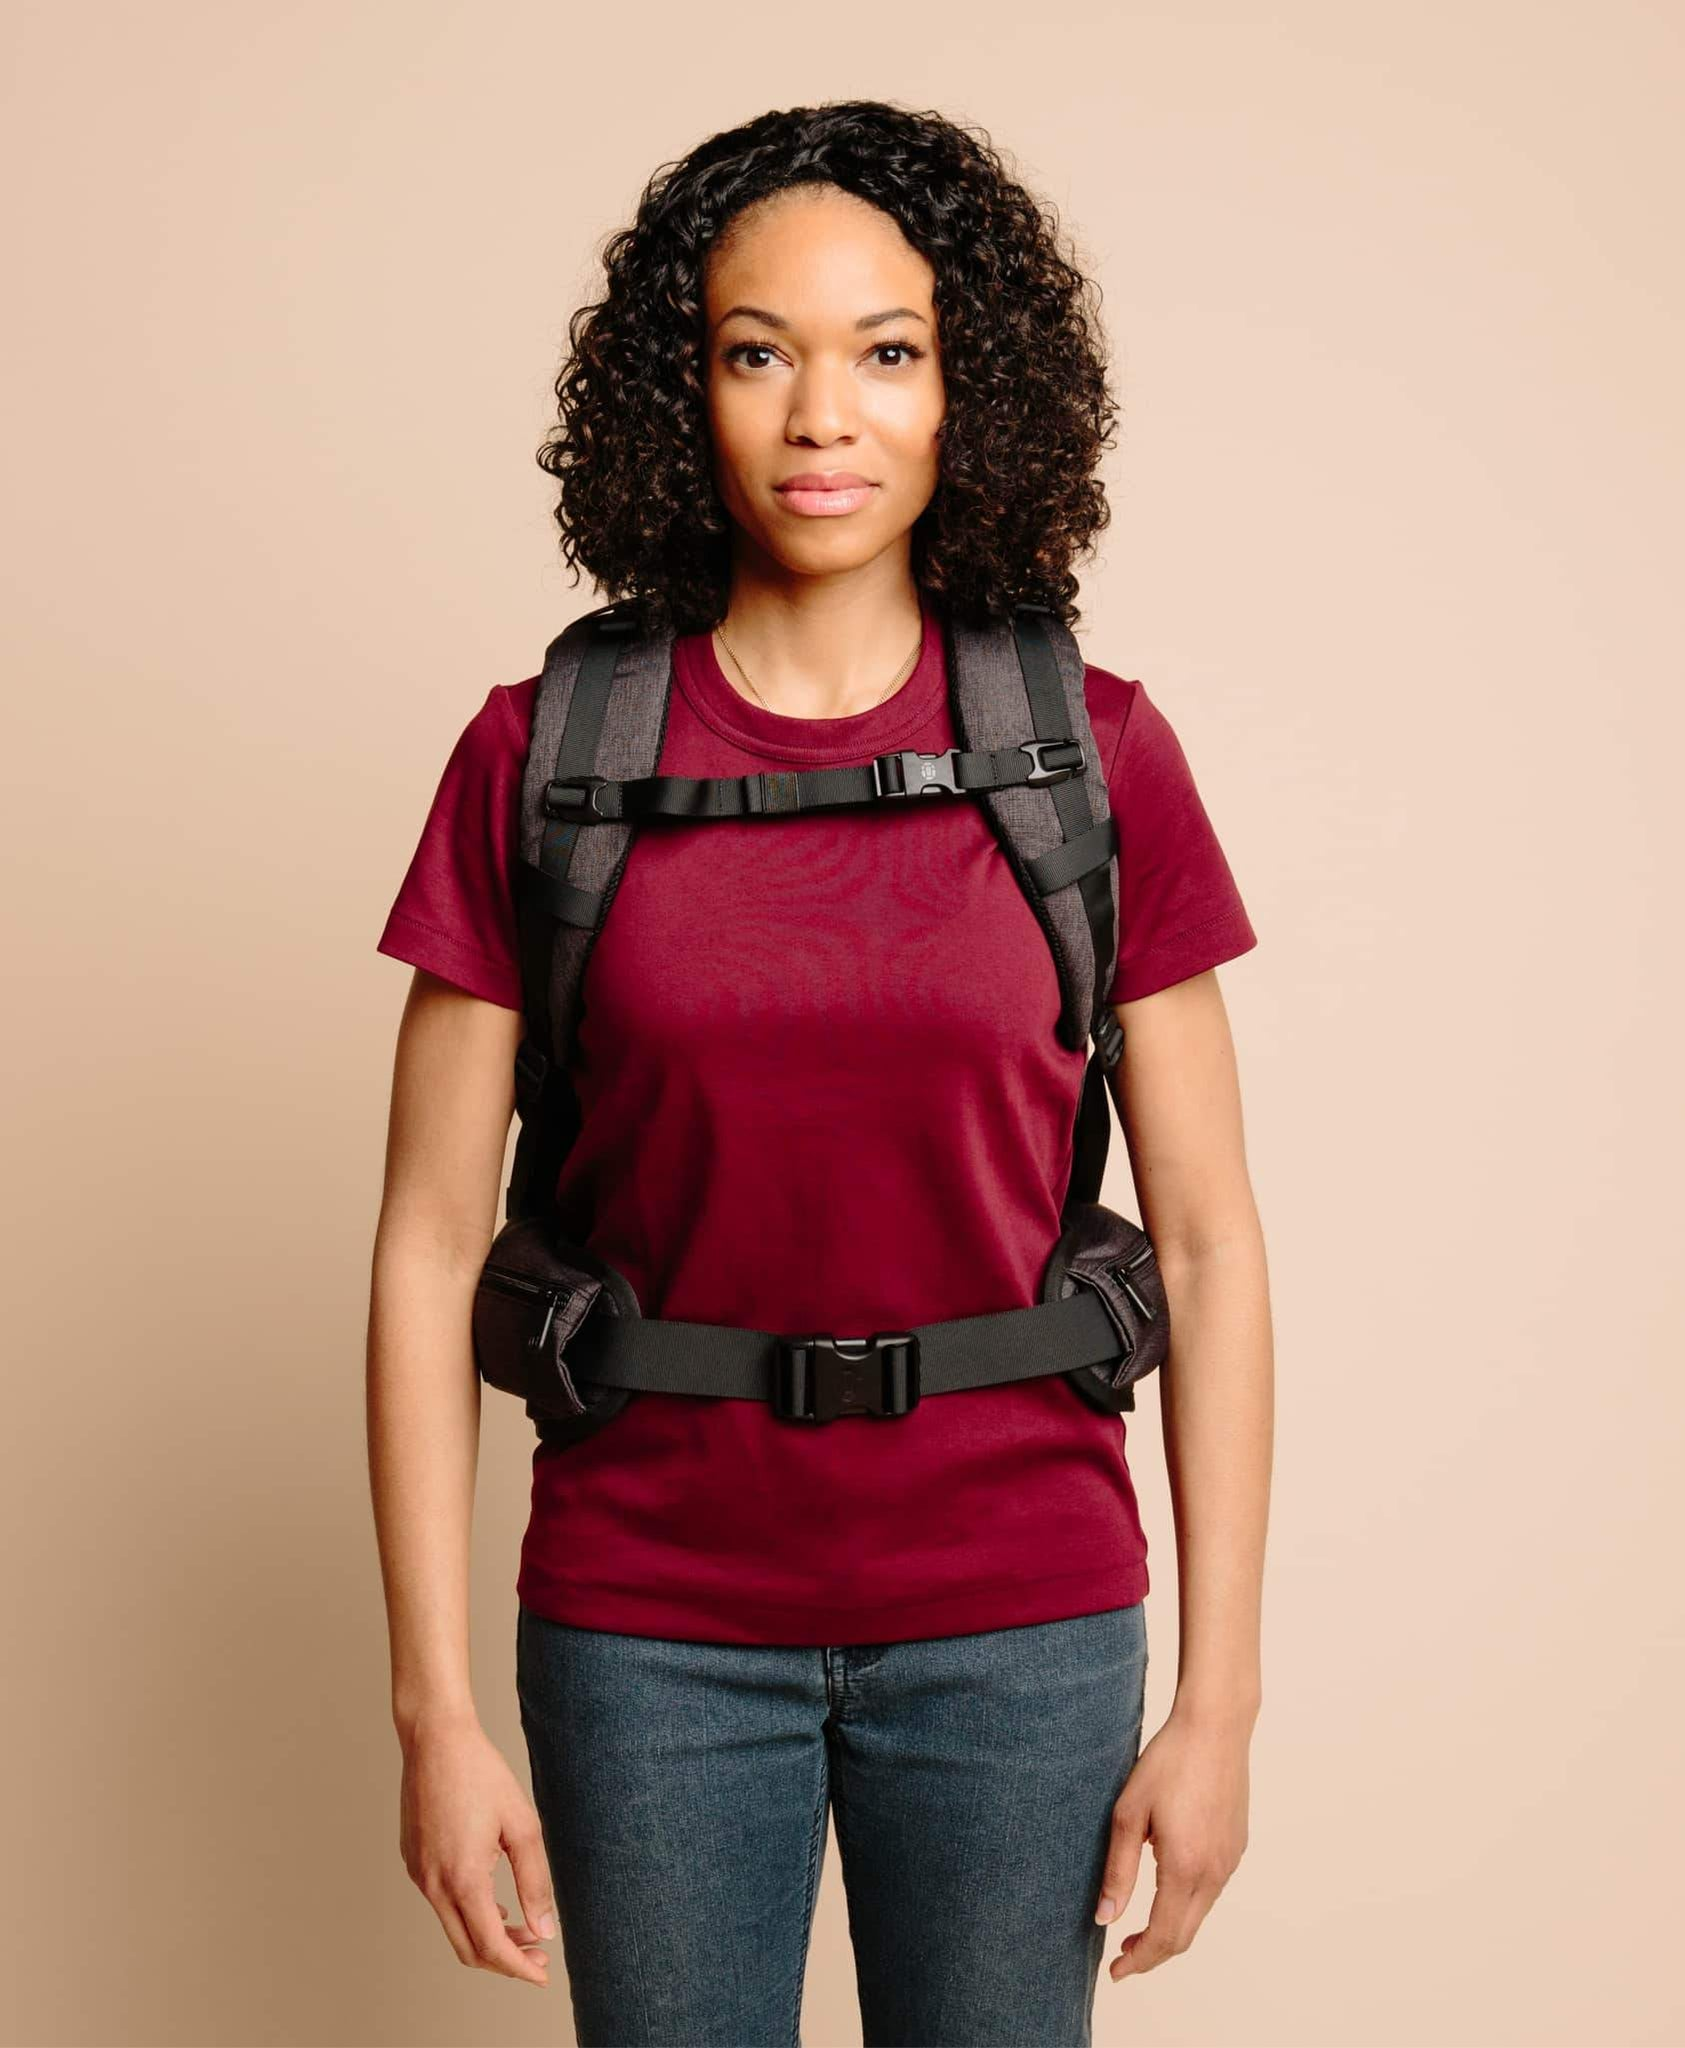 product/ Suspension system fits comfortably on womens' torsos